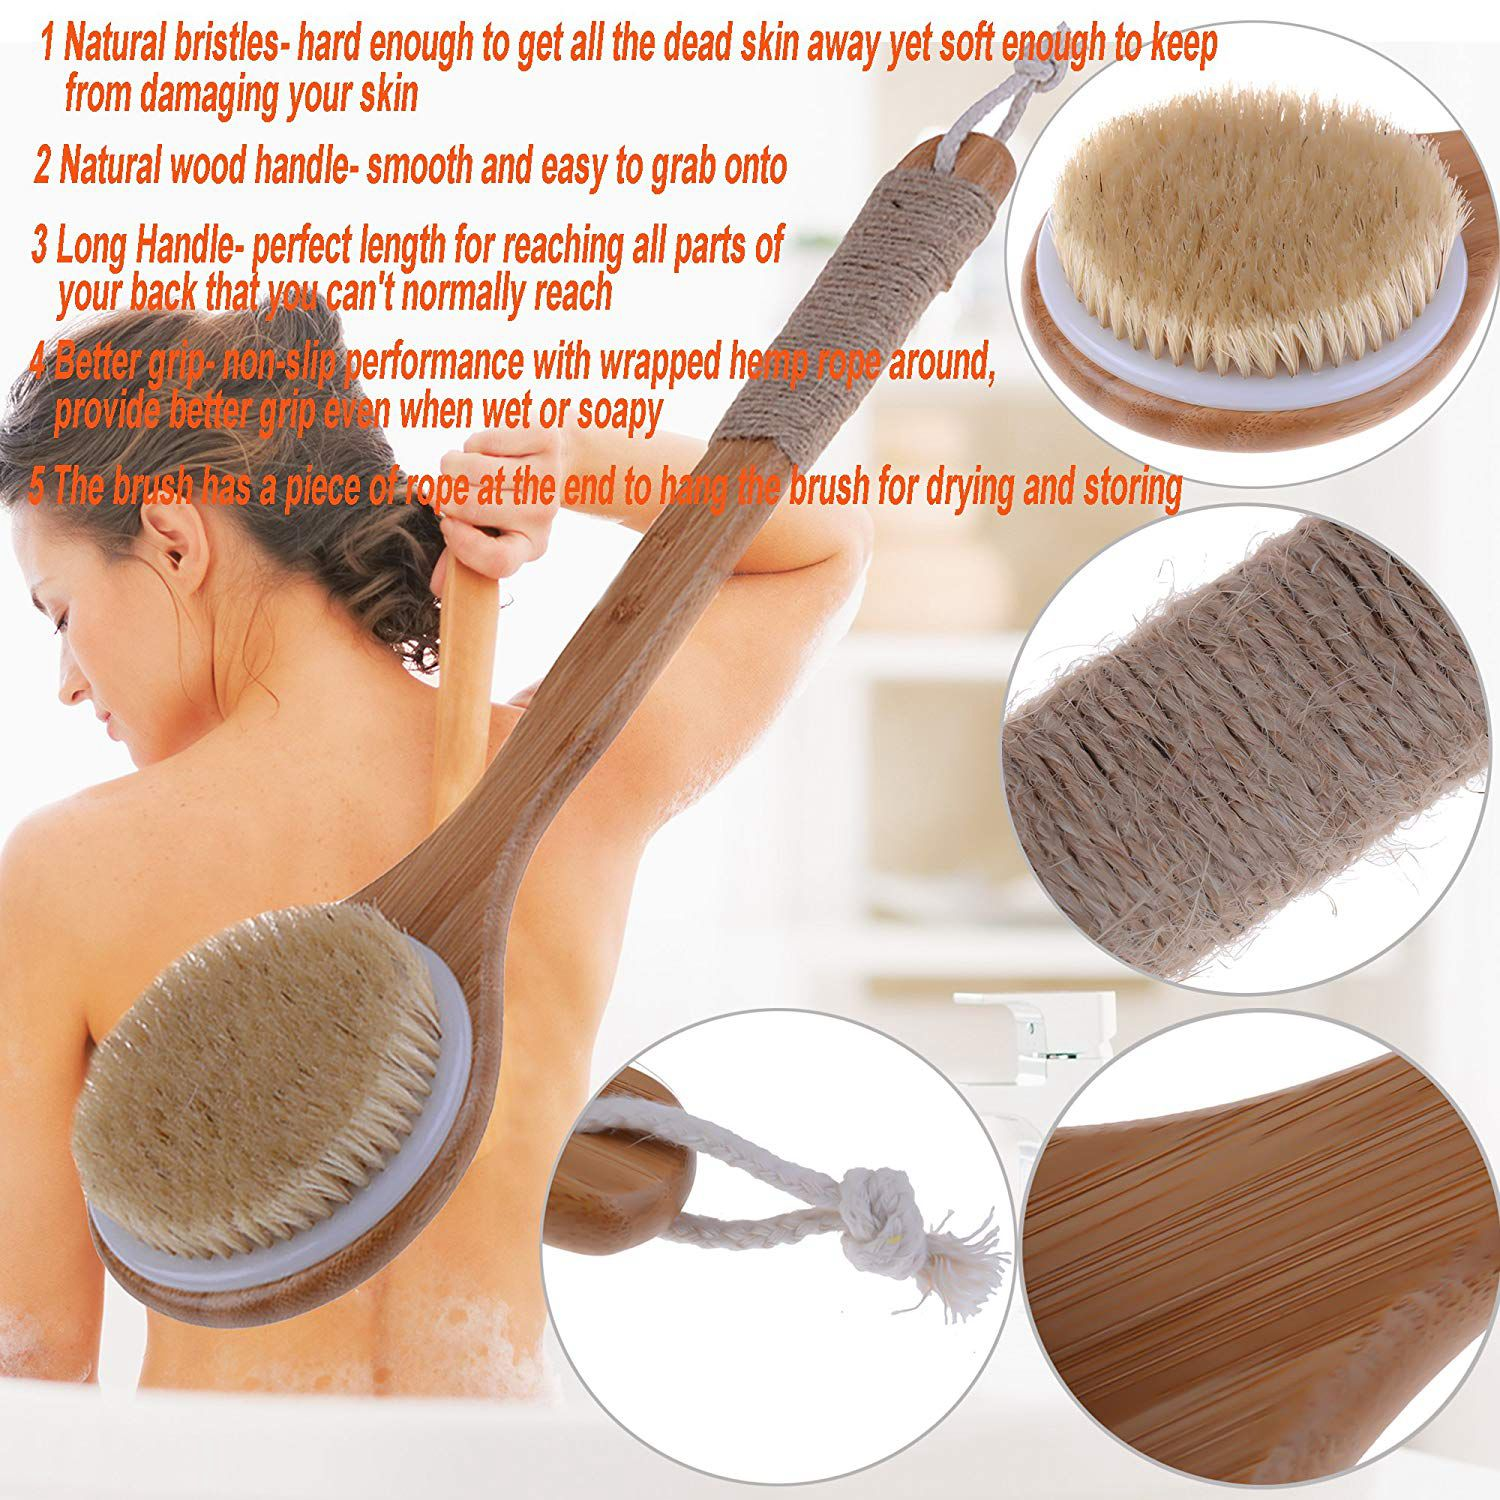 Hot Dry Skin Body Brush Bath Exfoliating Brush Natural Bristles Back Scrubber with Long Wooden Handle for Shower, Remove Dead Ladies Toiletries & Skin Care Male Grooming Shower Brush Toiletries cb5feb1b7314637725a2e7: wood color